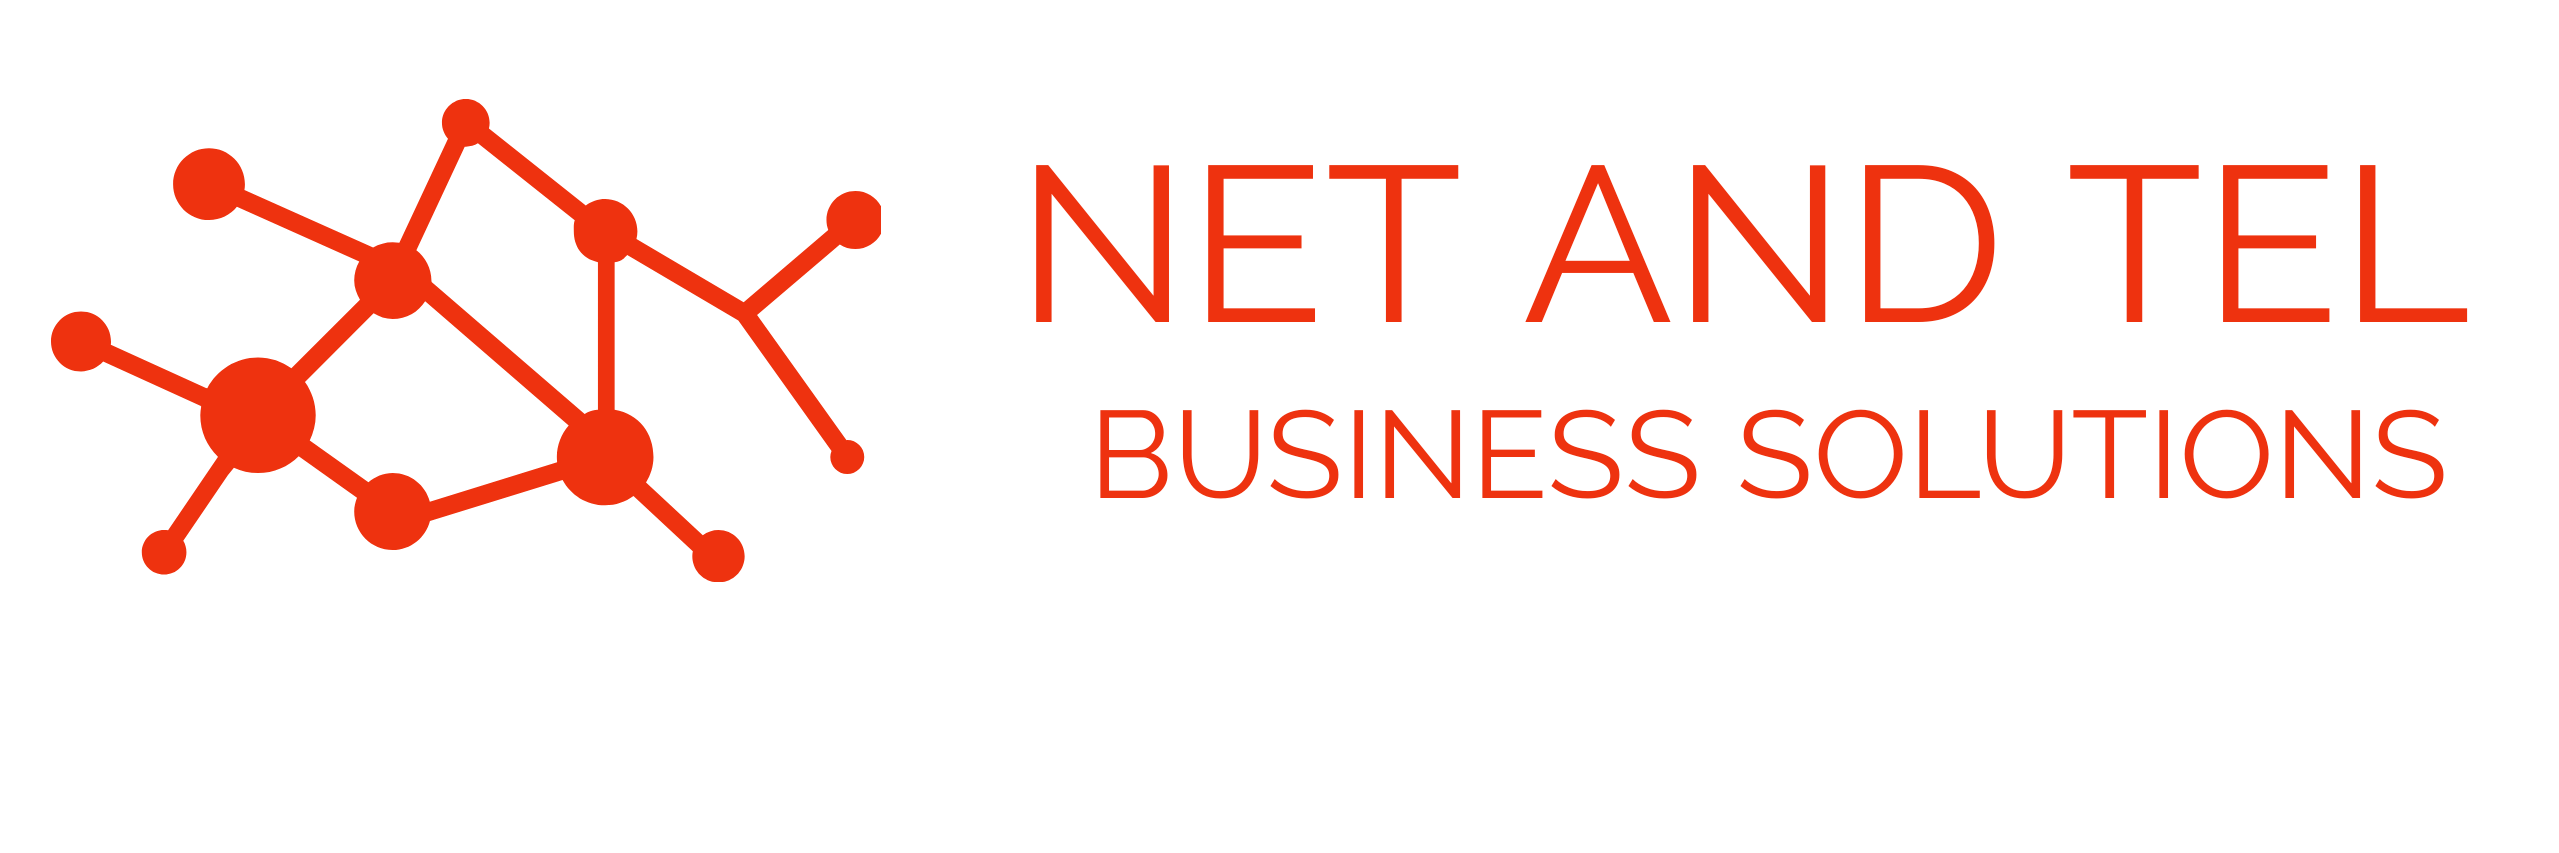 Business Listing for Net and Tel Business Solutions